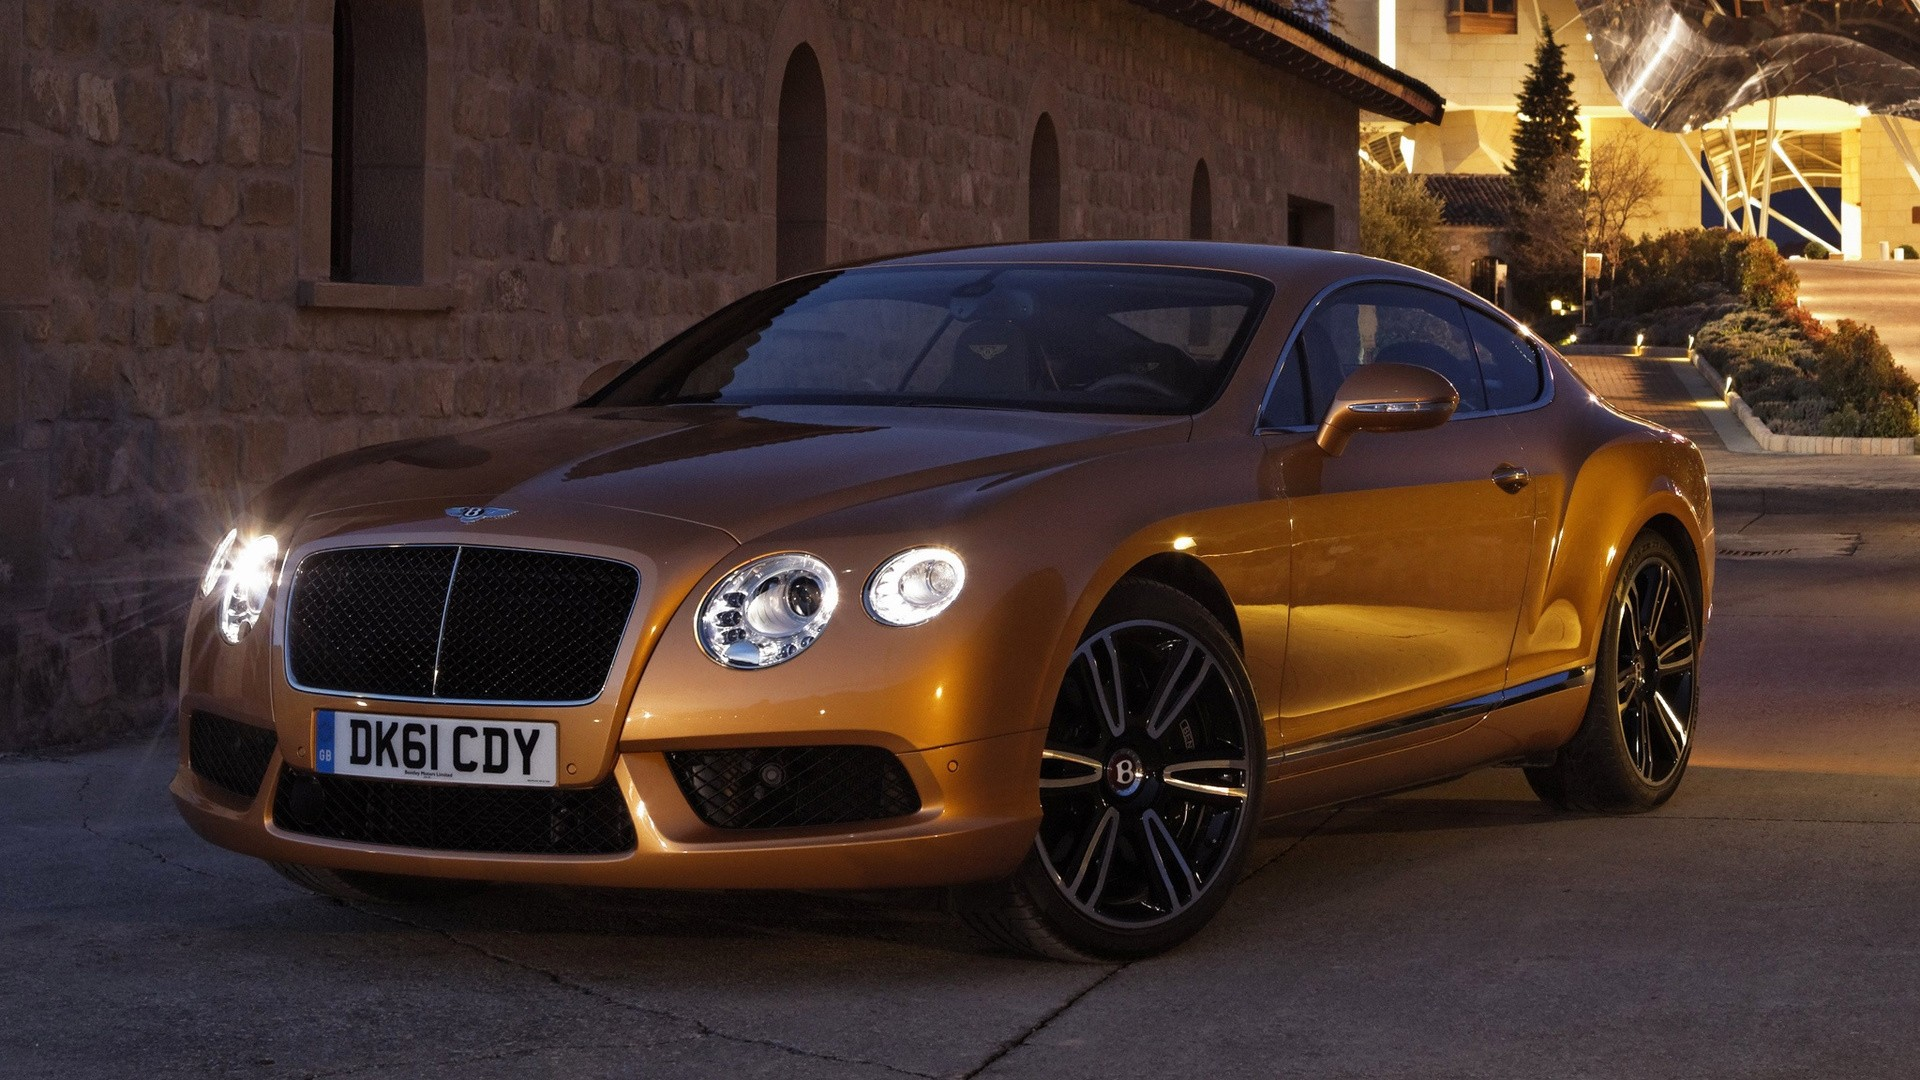 Bentley Wallpaper Download Full